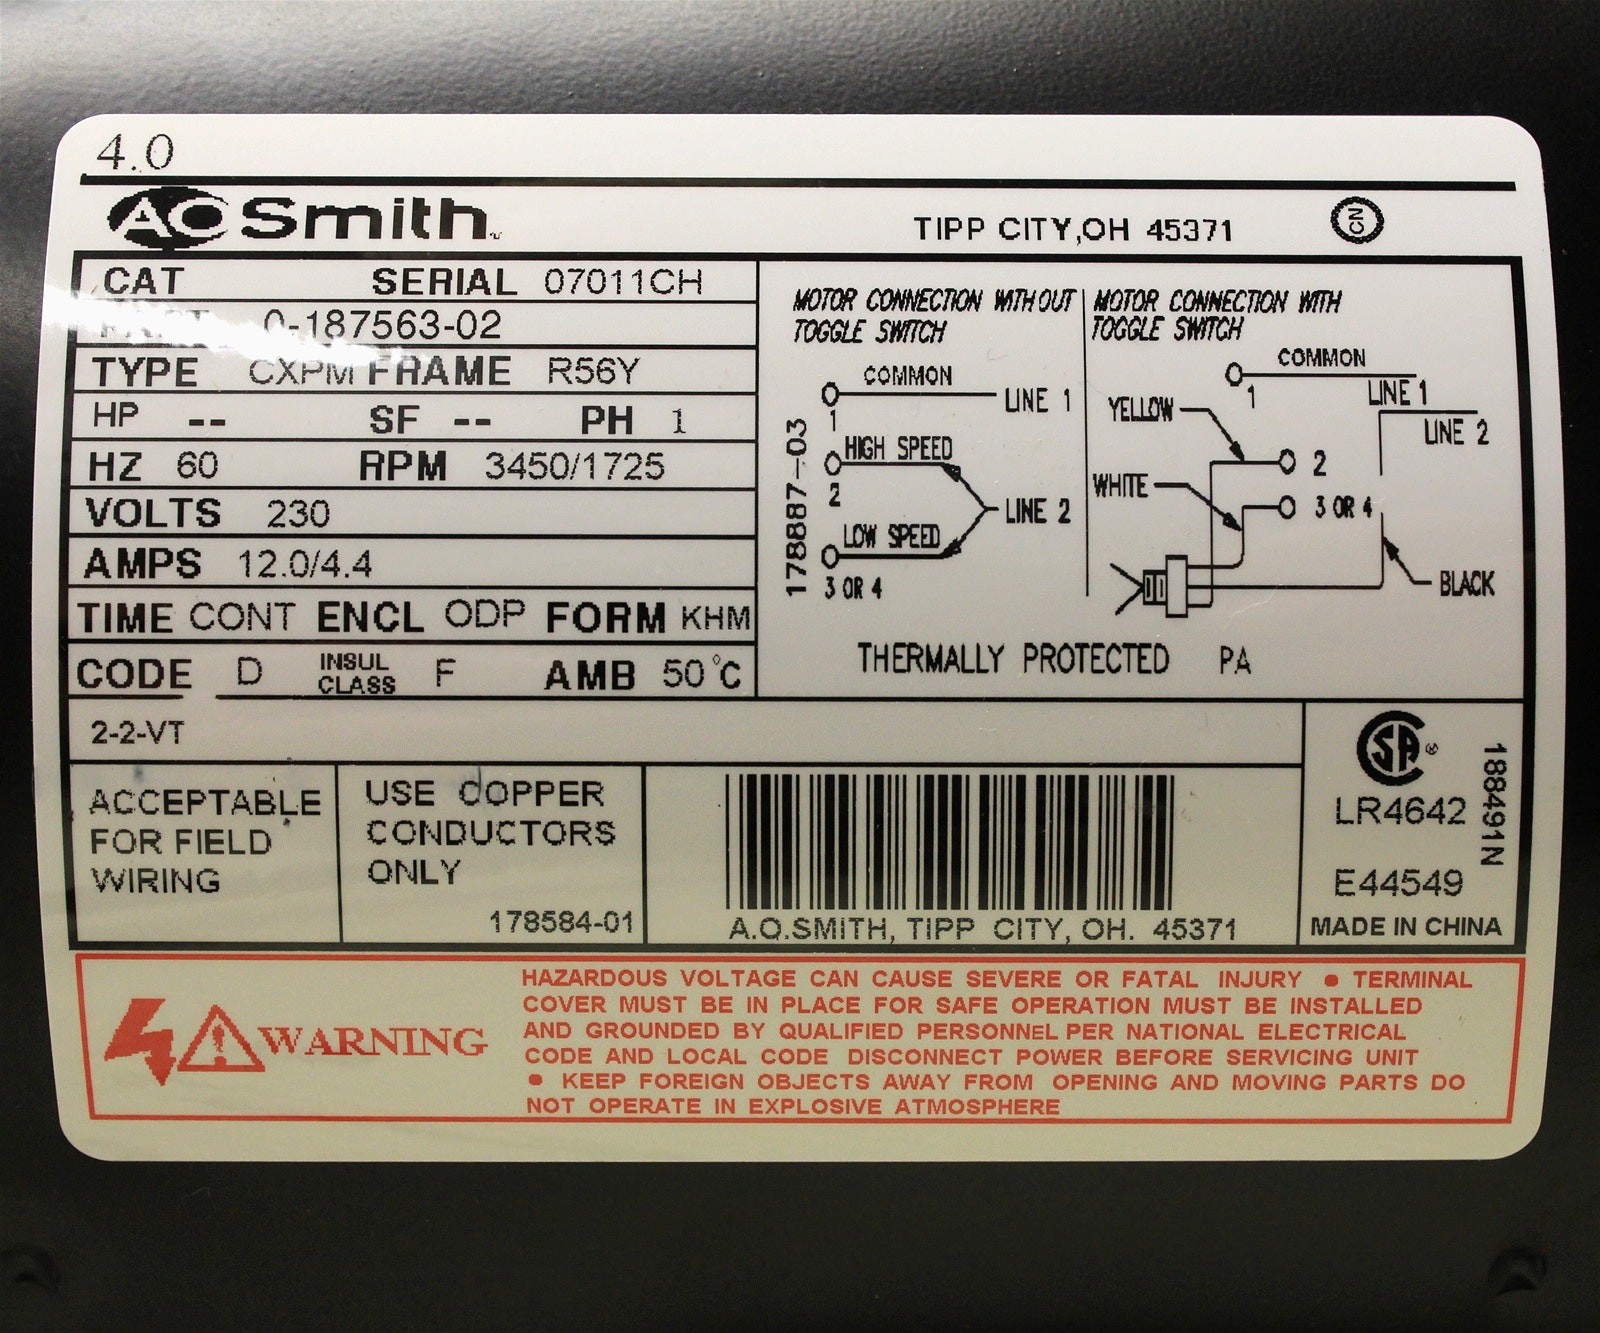 Electric Motor Wiring Diagram 110 To 220 New Dorable Leeson Electric - Electric Motor Wiring Diagram 220 To 110